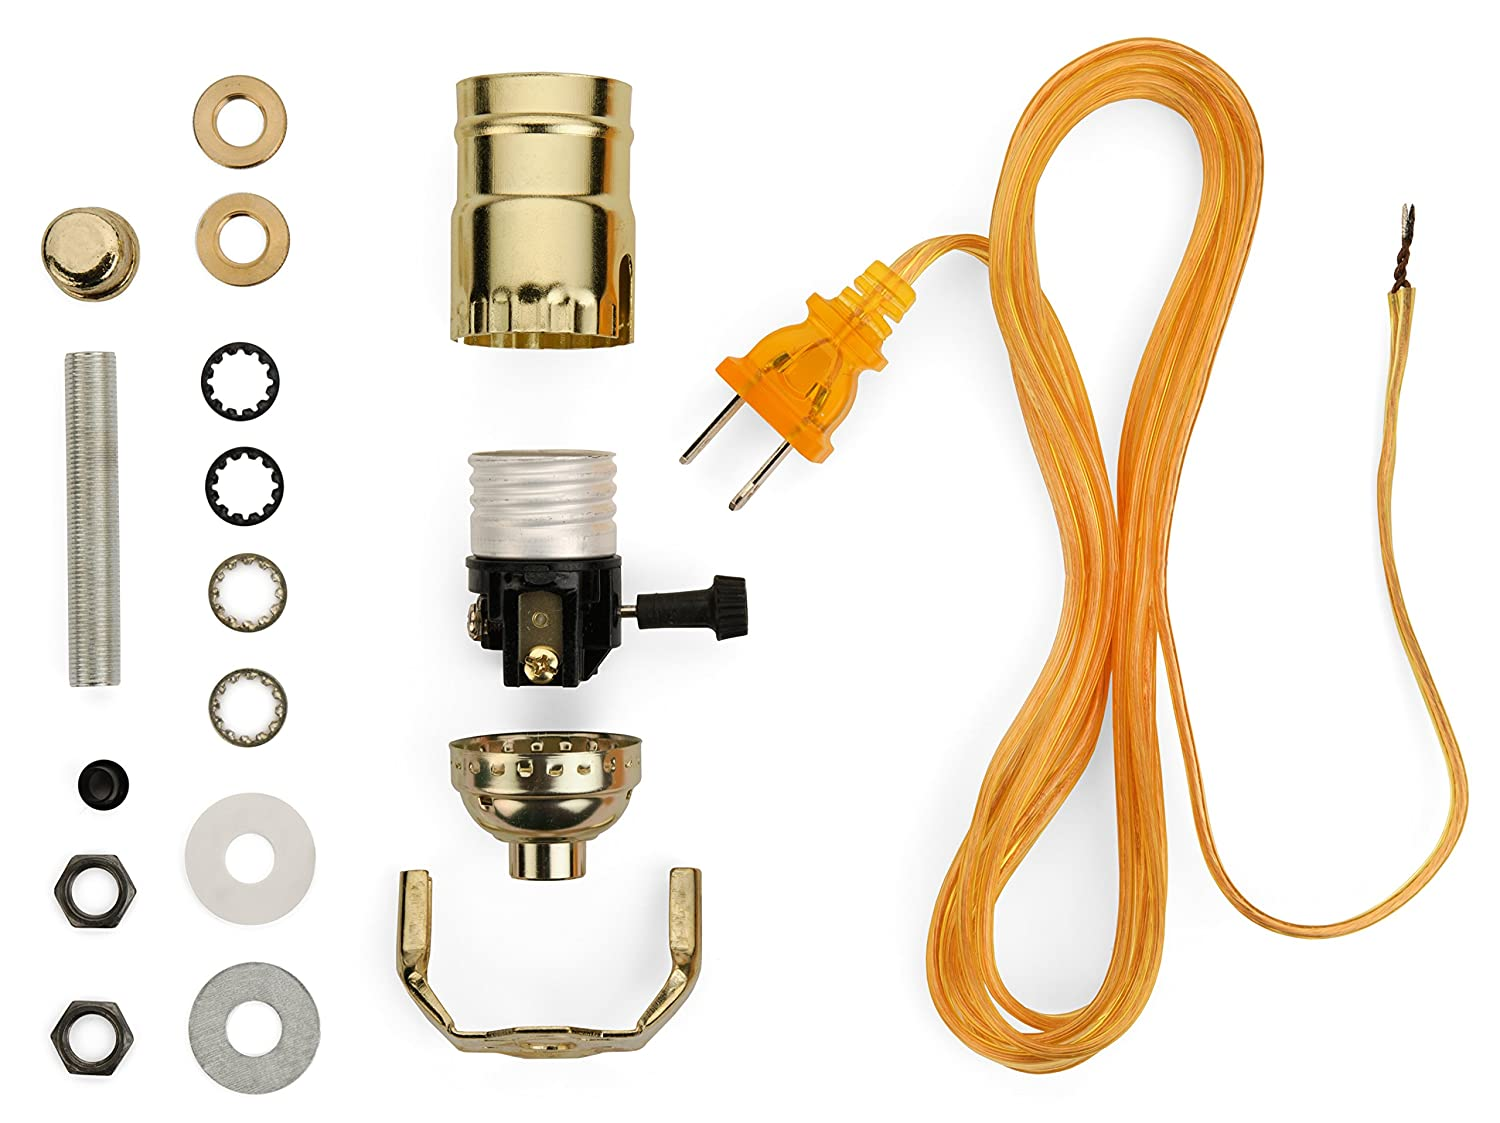 Lamp Base Socket Kit Electrical Wiring Set For Making Repairing Antique And Repurposing Lamps